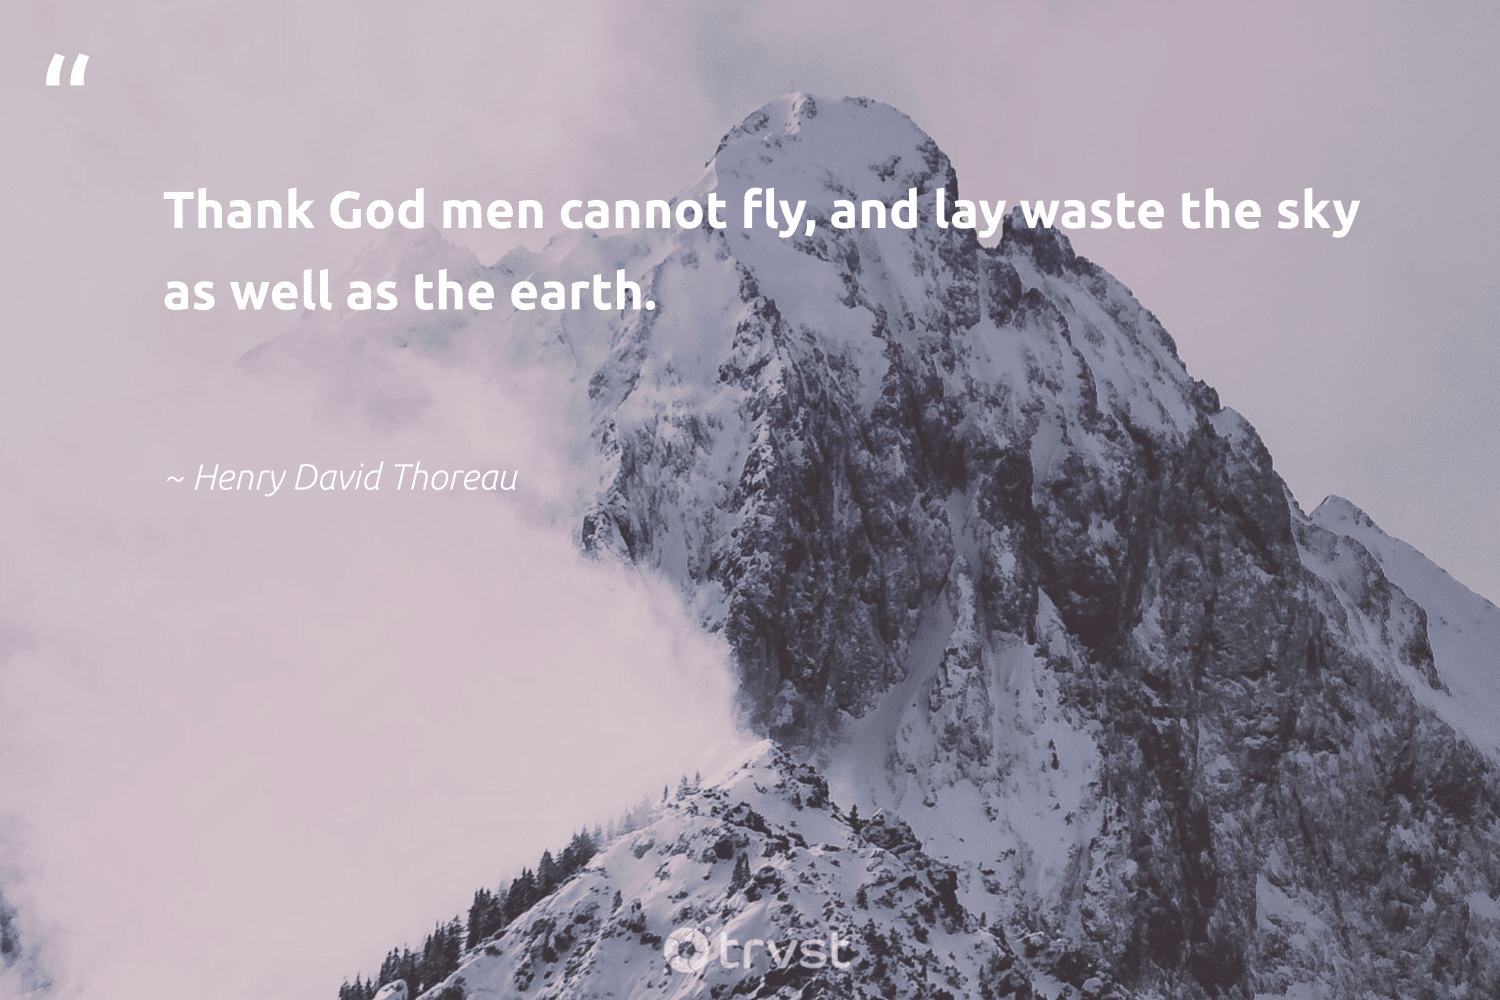 """""""Thank God men cannot fly, and lay waste the sky as well as the earth.""""  - Henry David Thoreau #trvst #quotes #environment #waste #earth #mothernature #noplanetb #wildlifeplanet #dotherightthing #planet #sustainability #sustainable"""